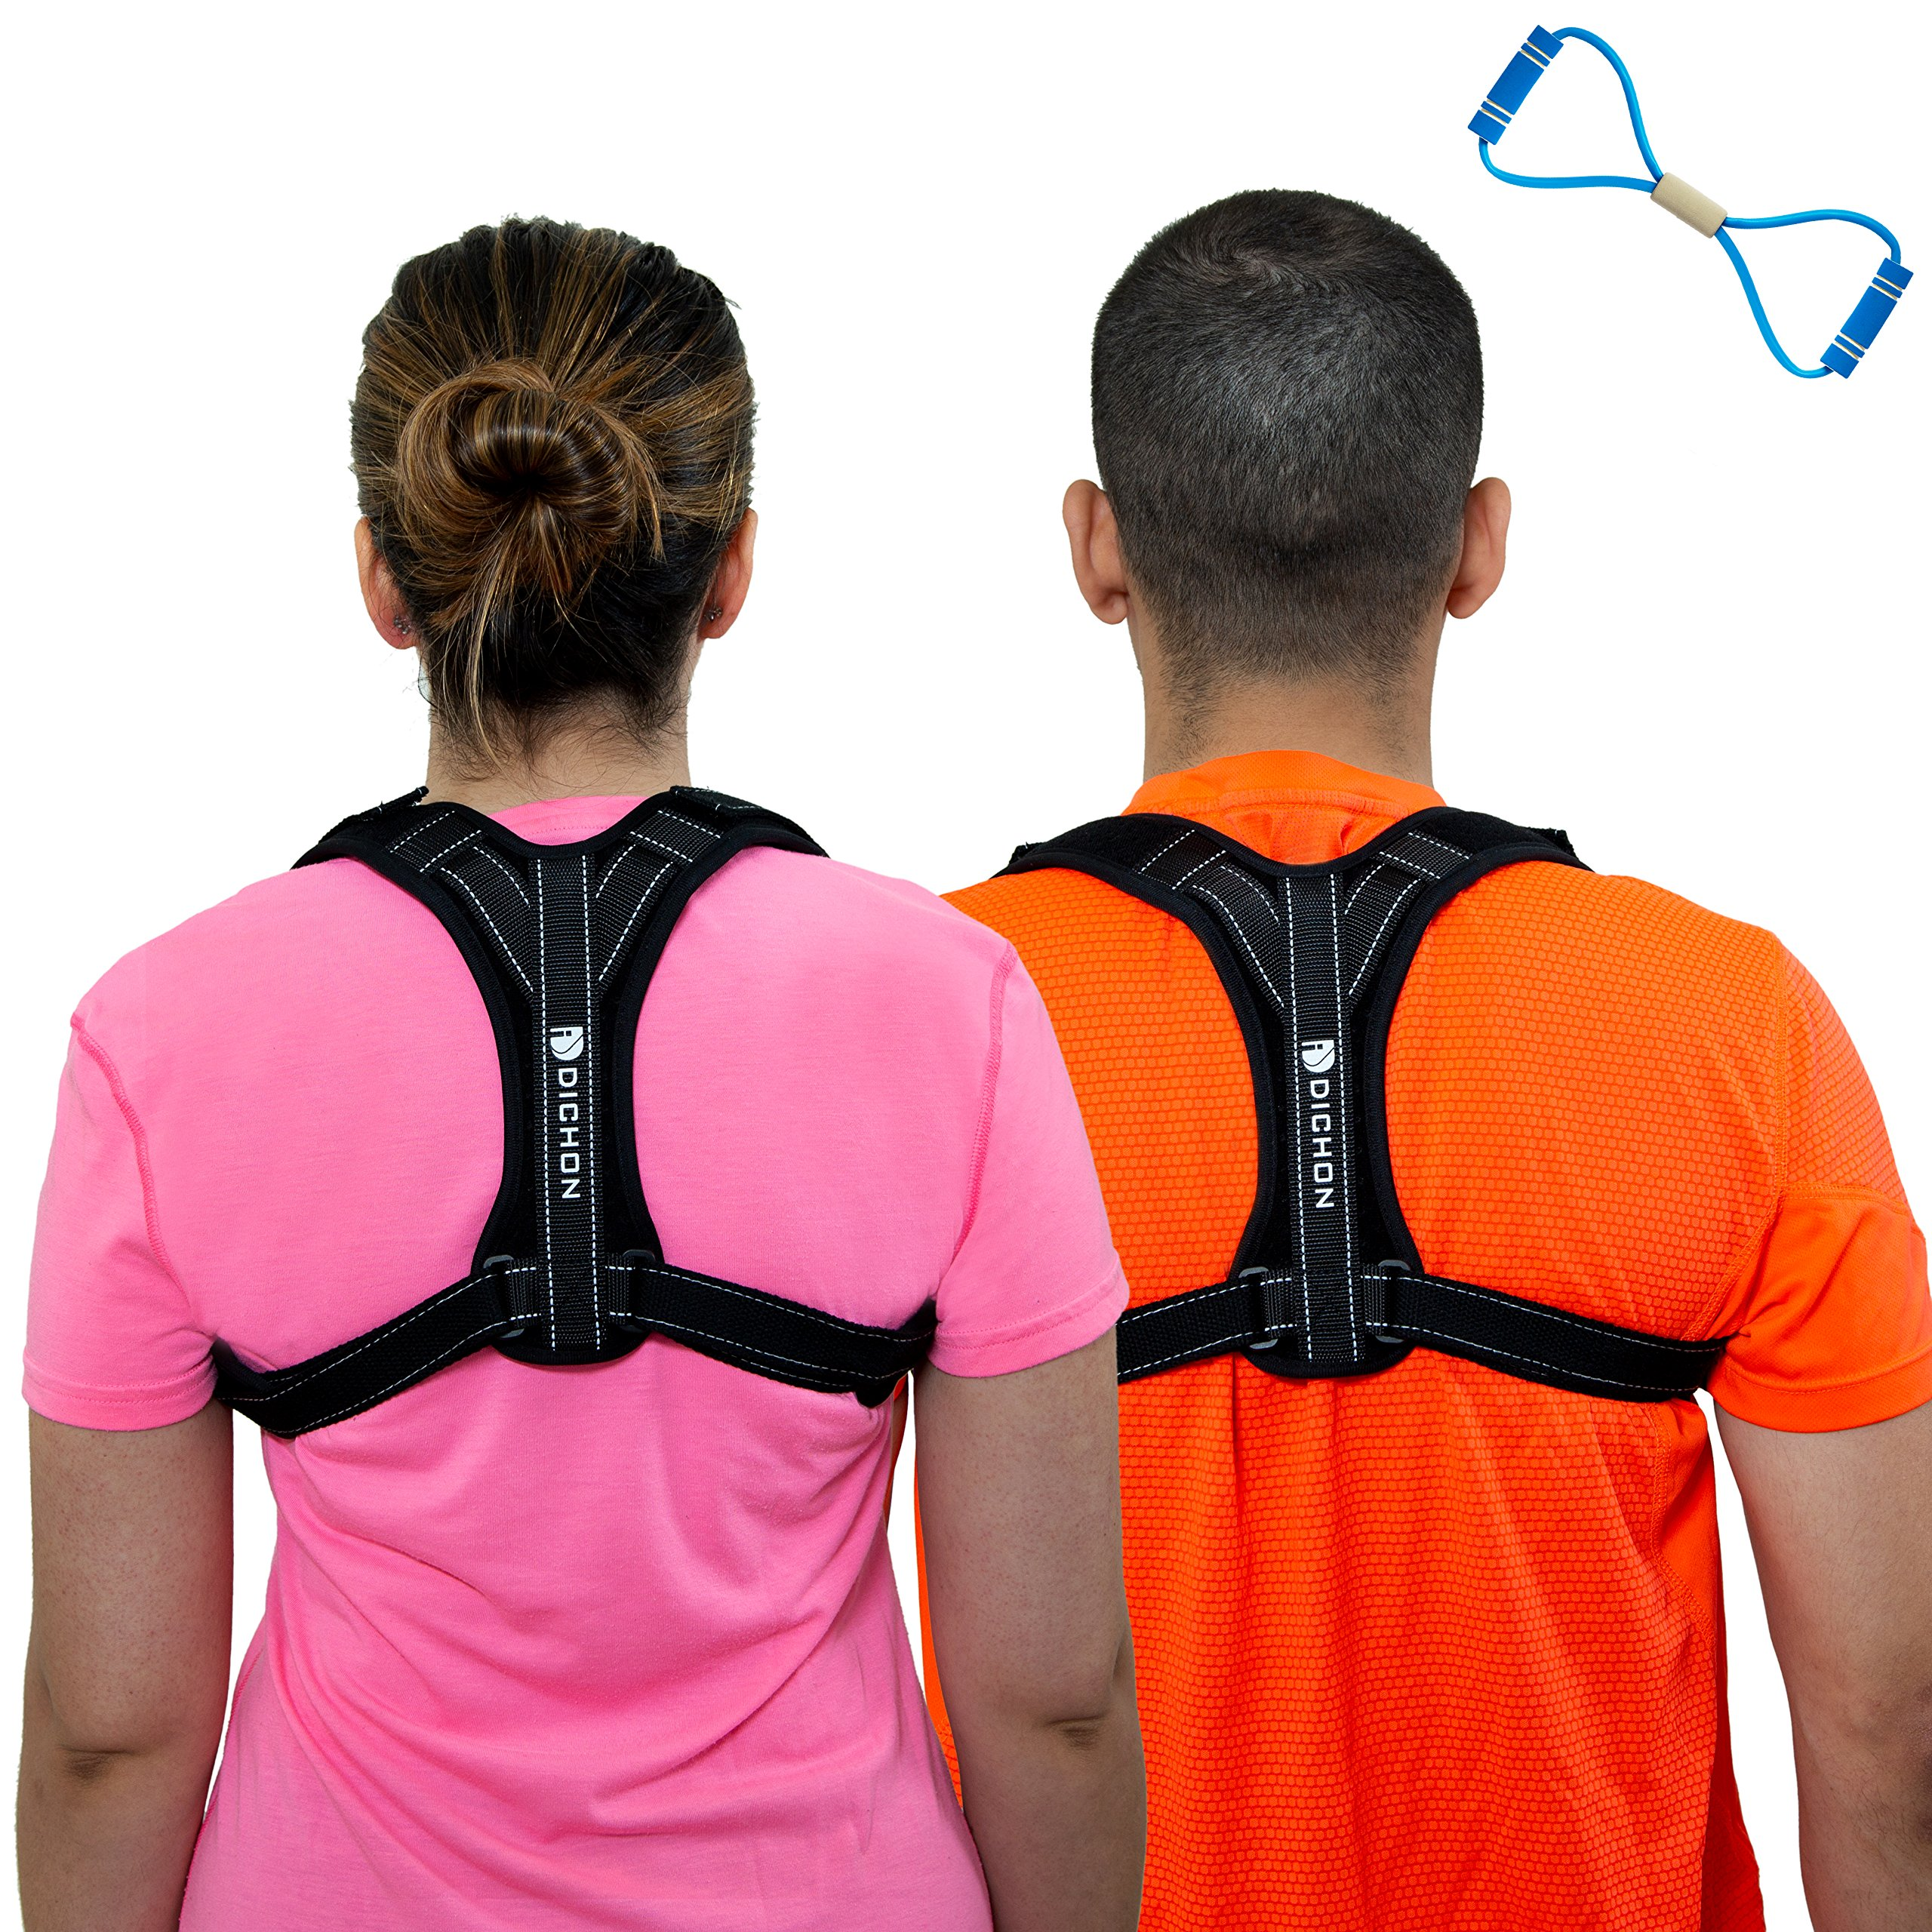 Dichon Innovations Posture Corrector Brace for Men and Women-Comfortable and Adjustable Clavicle Shoulder Support Complete with Underarm Pads and Yoga Strap, Discreet Design, Unisex Size